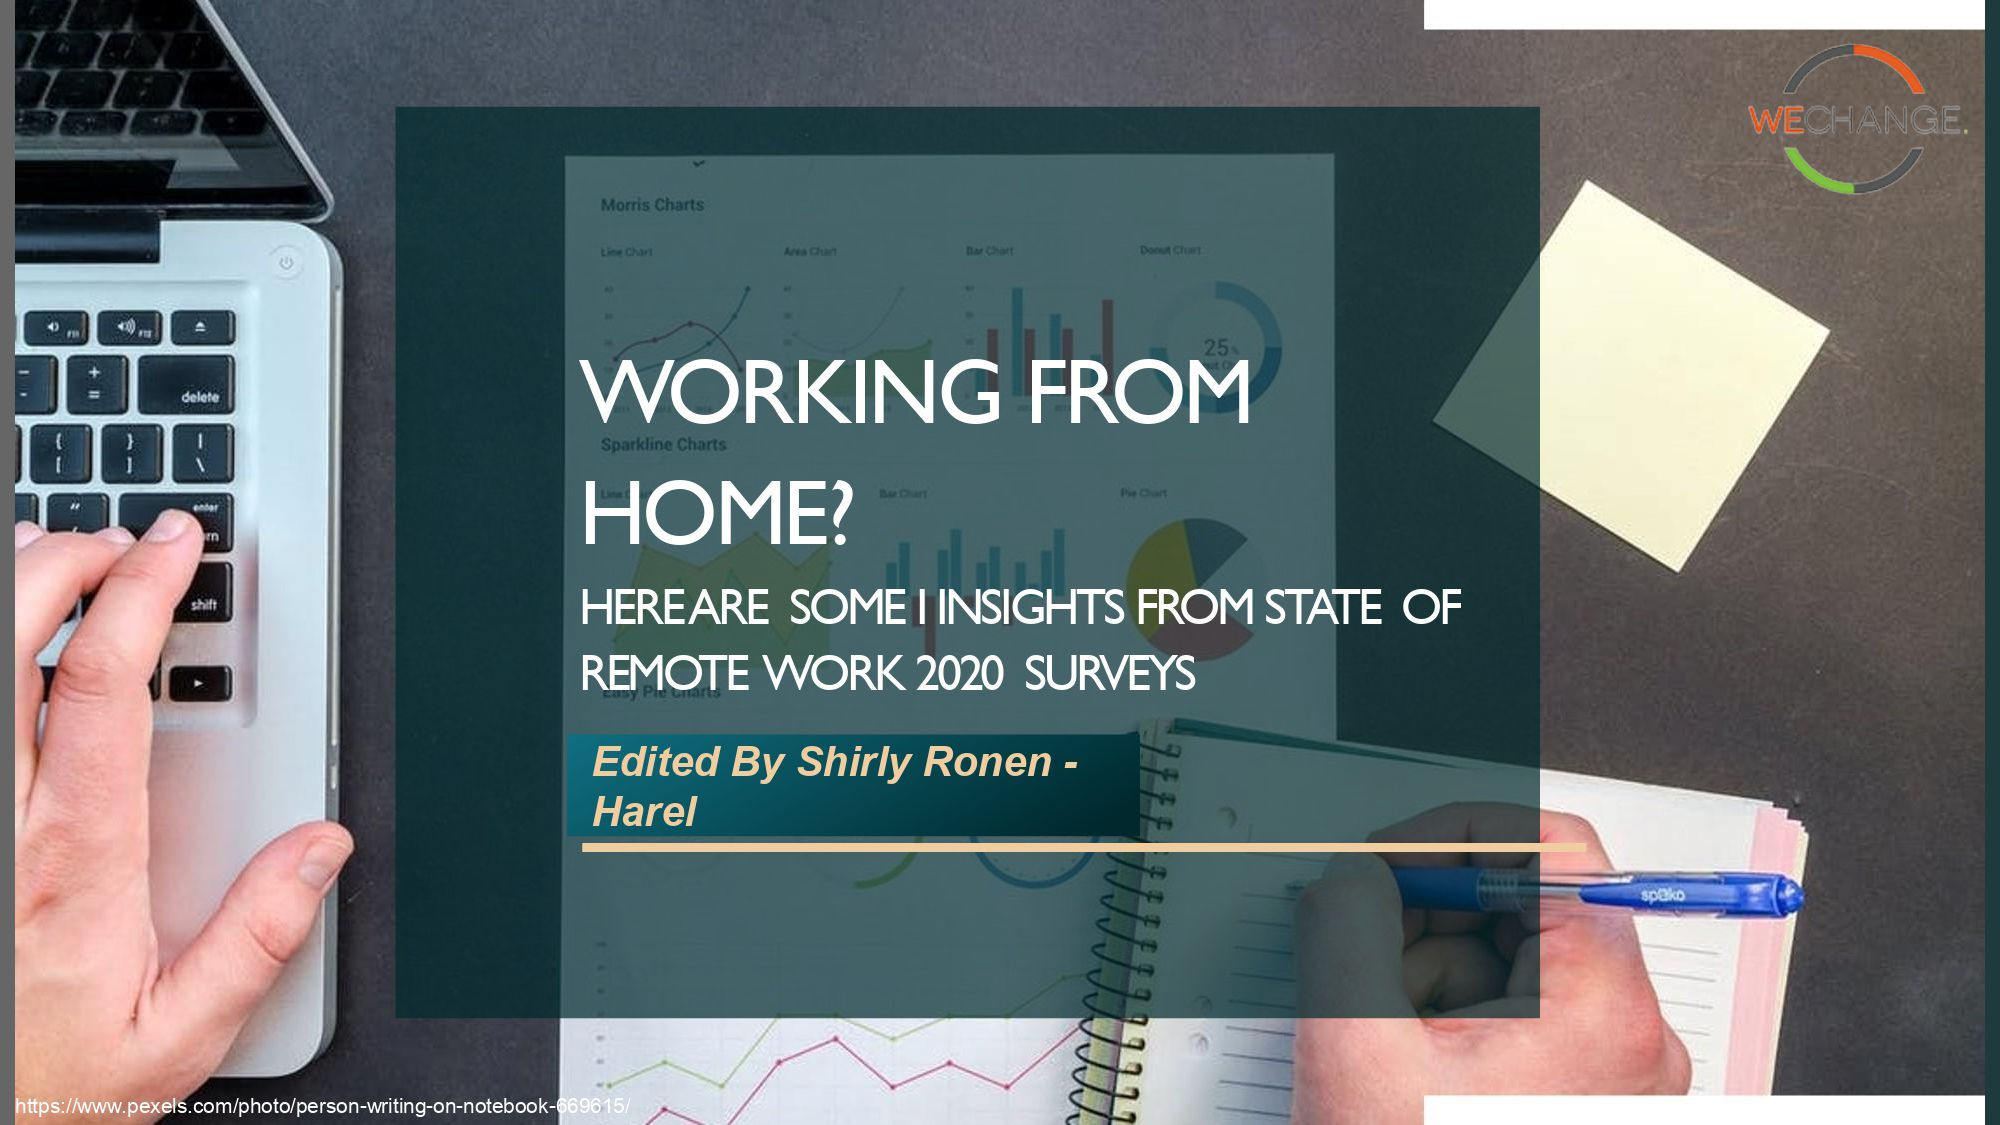 State of remote work 2020 page 0001 compressed Working from home?  Here are some insights from State of remote work 2020 surveys.